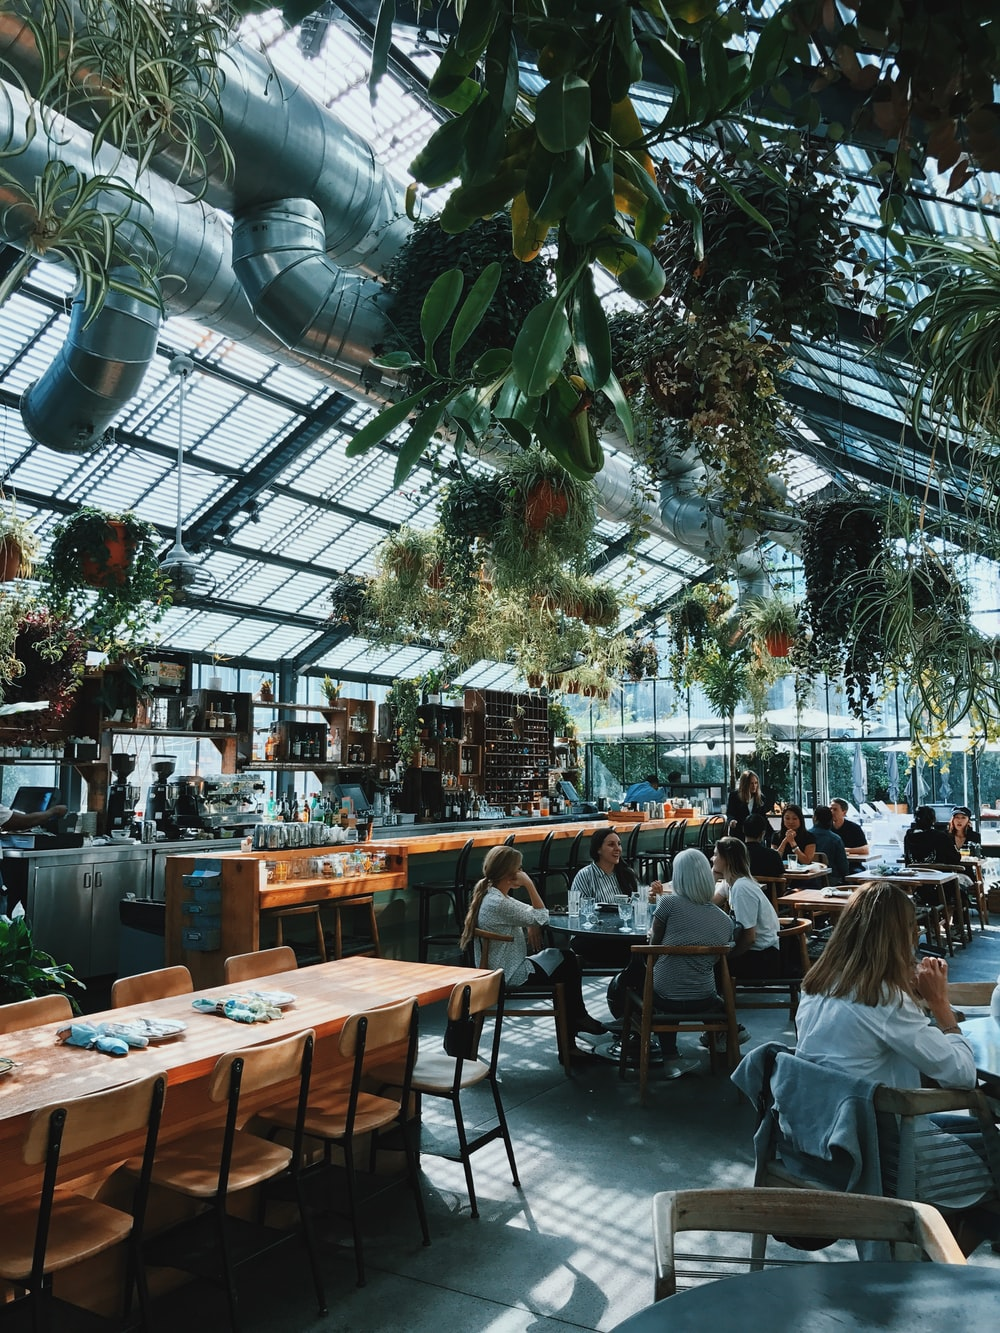 100 Restaurant Images Hq Download Free Images Stock Photos